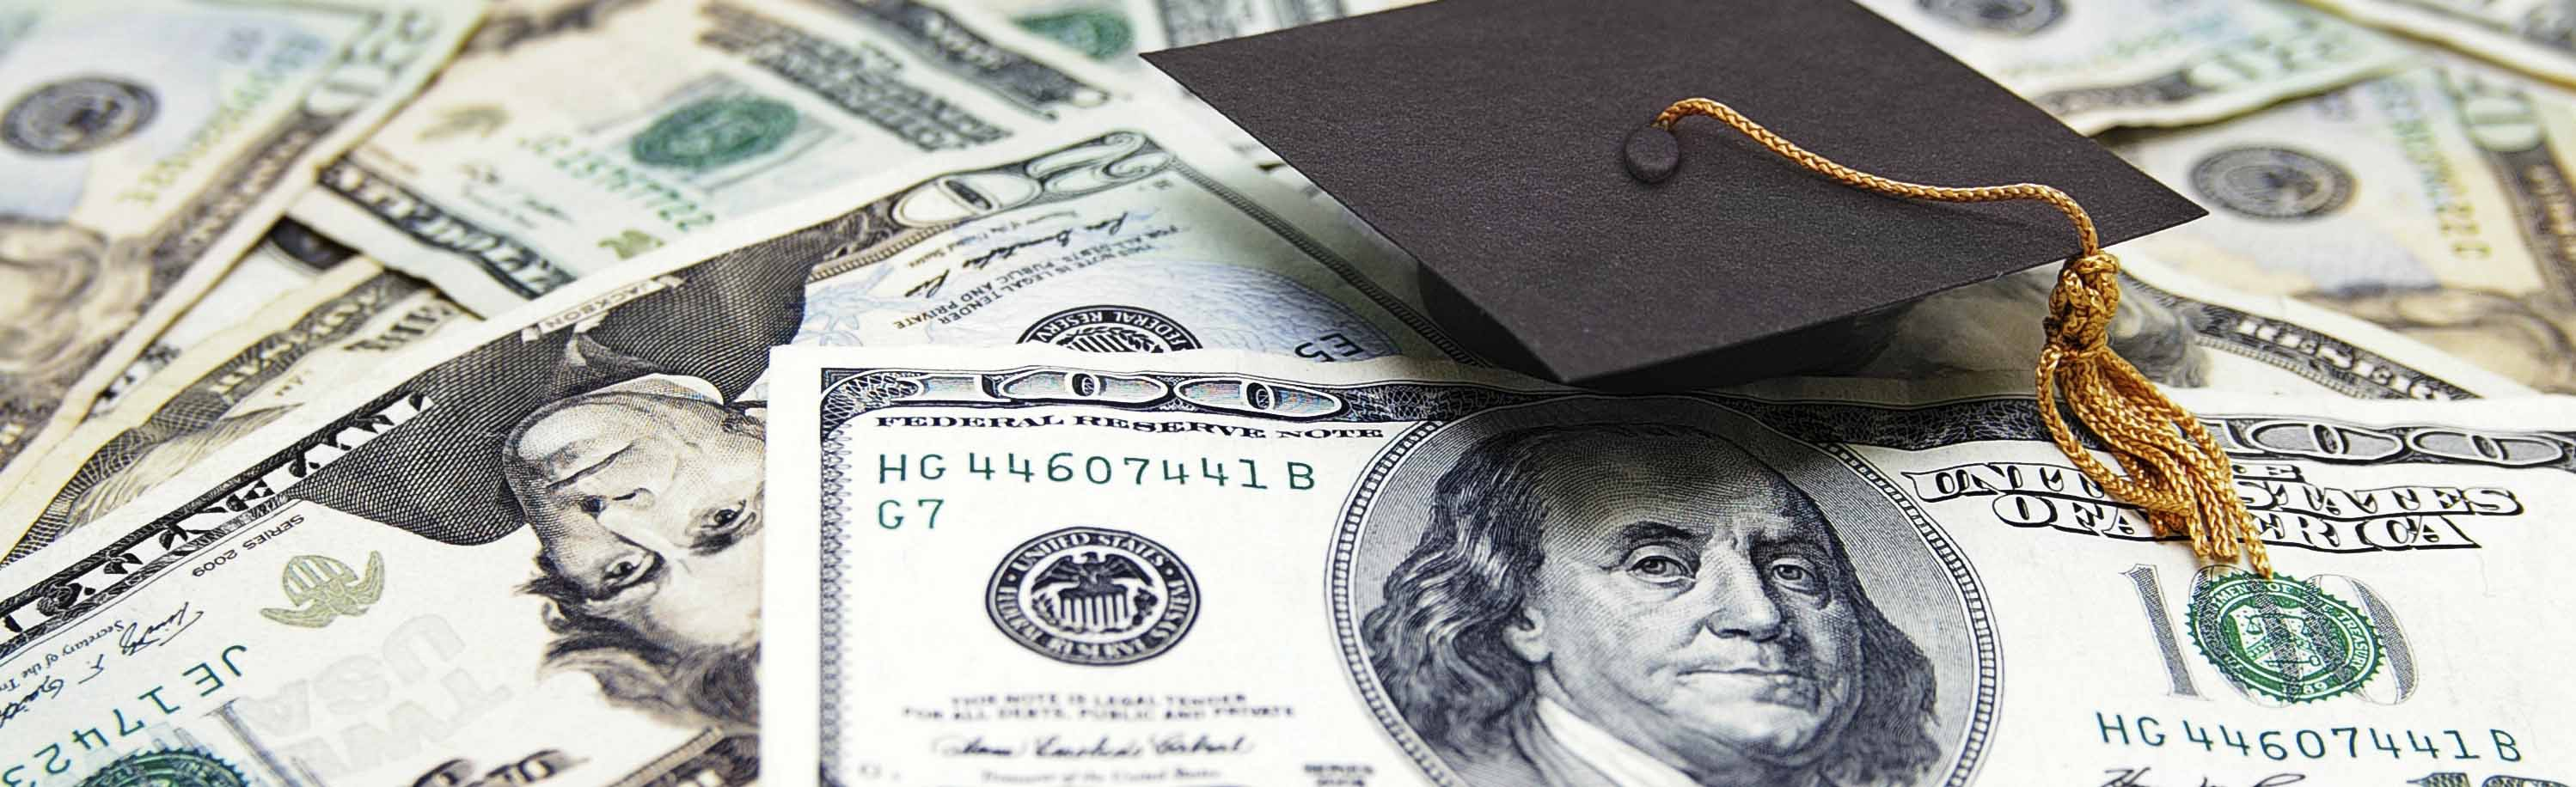 You Want to Go to a Boarding School But Cannot Afford It Tips About Student's Financial Aid